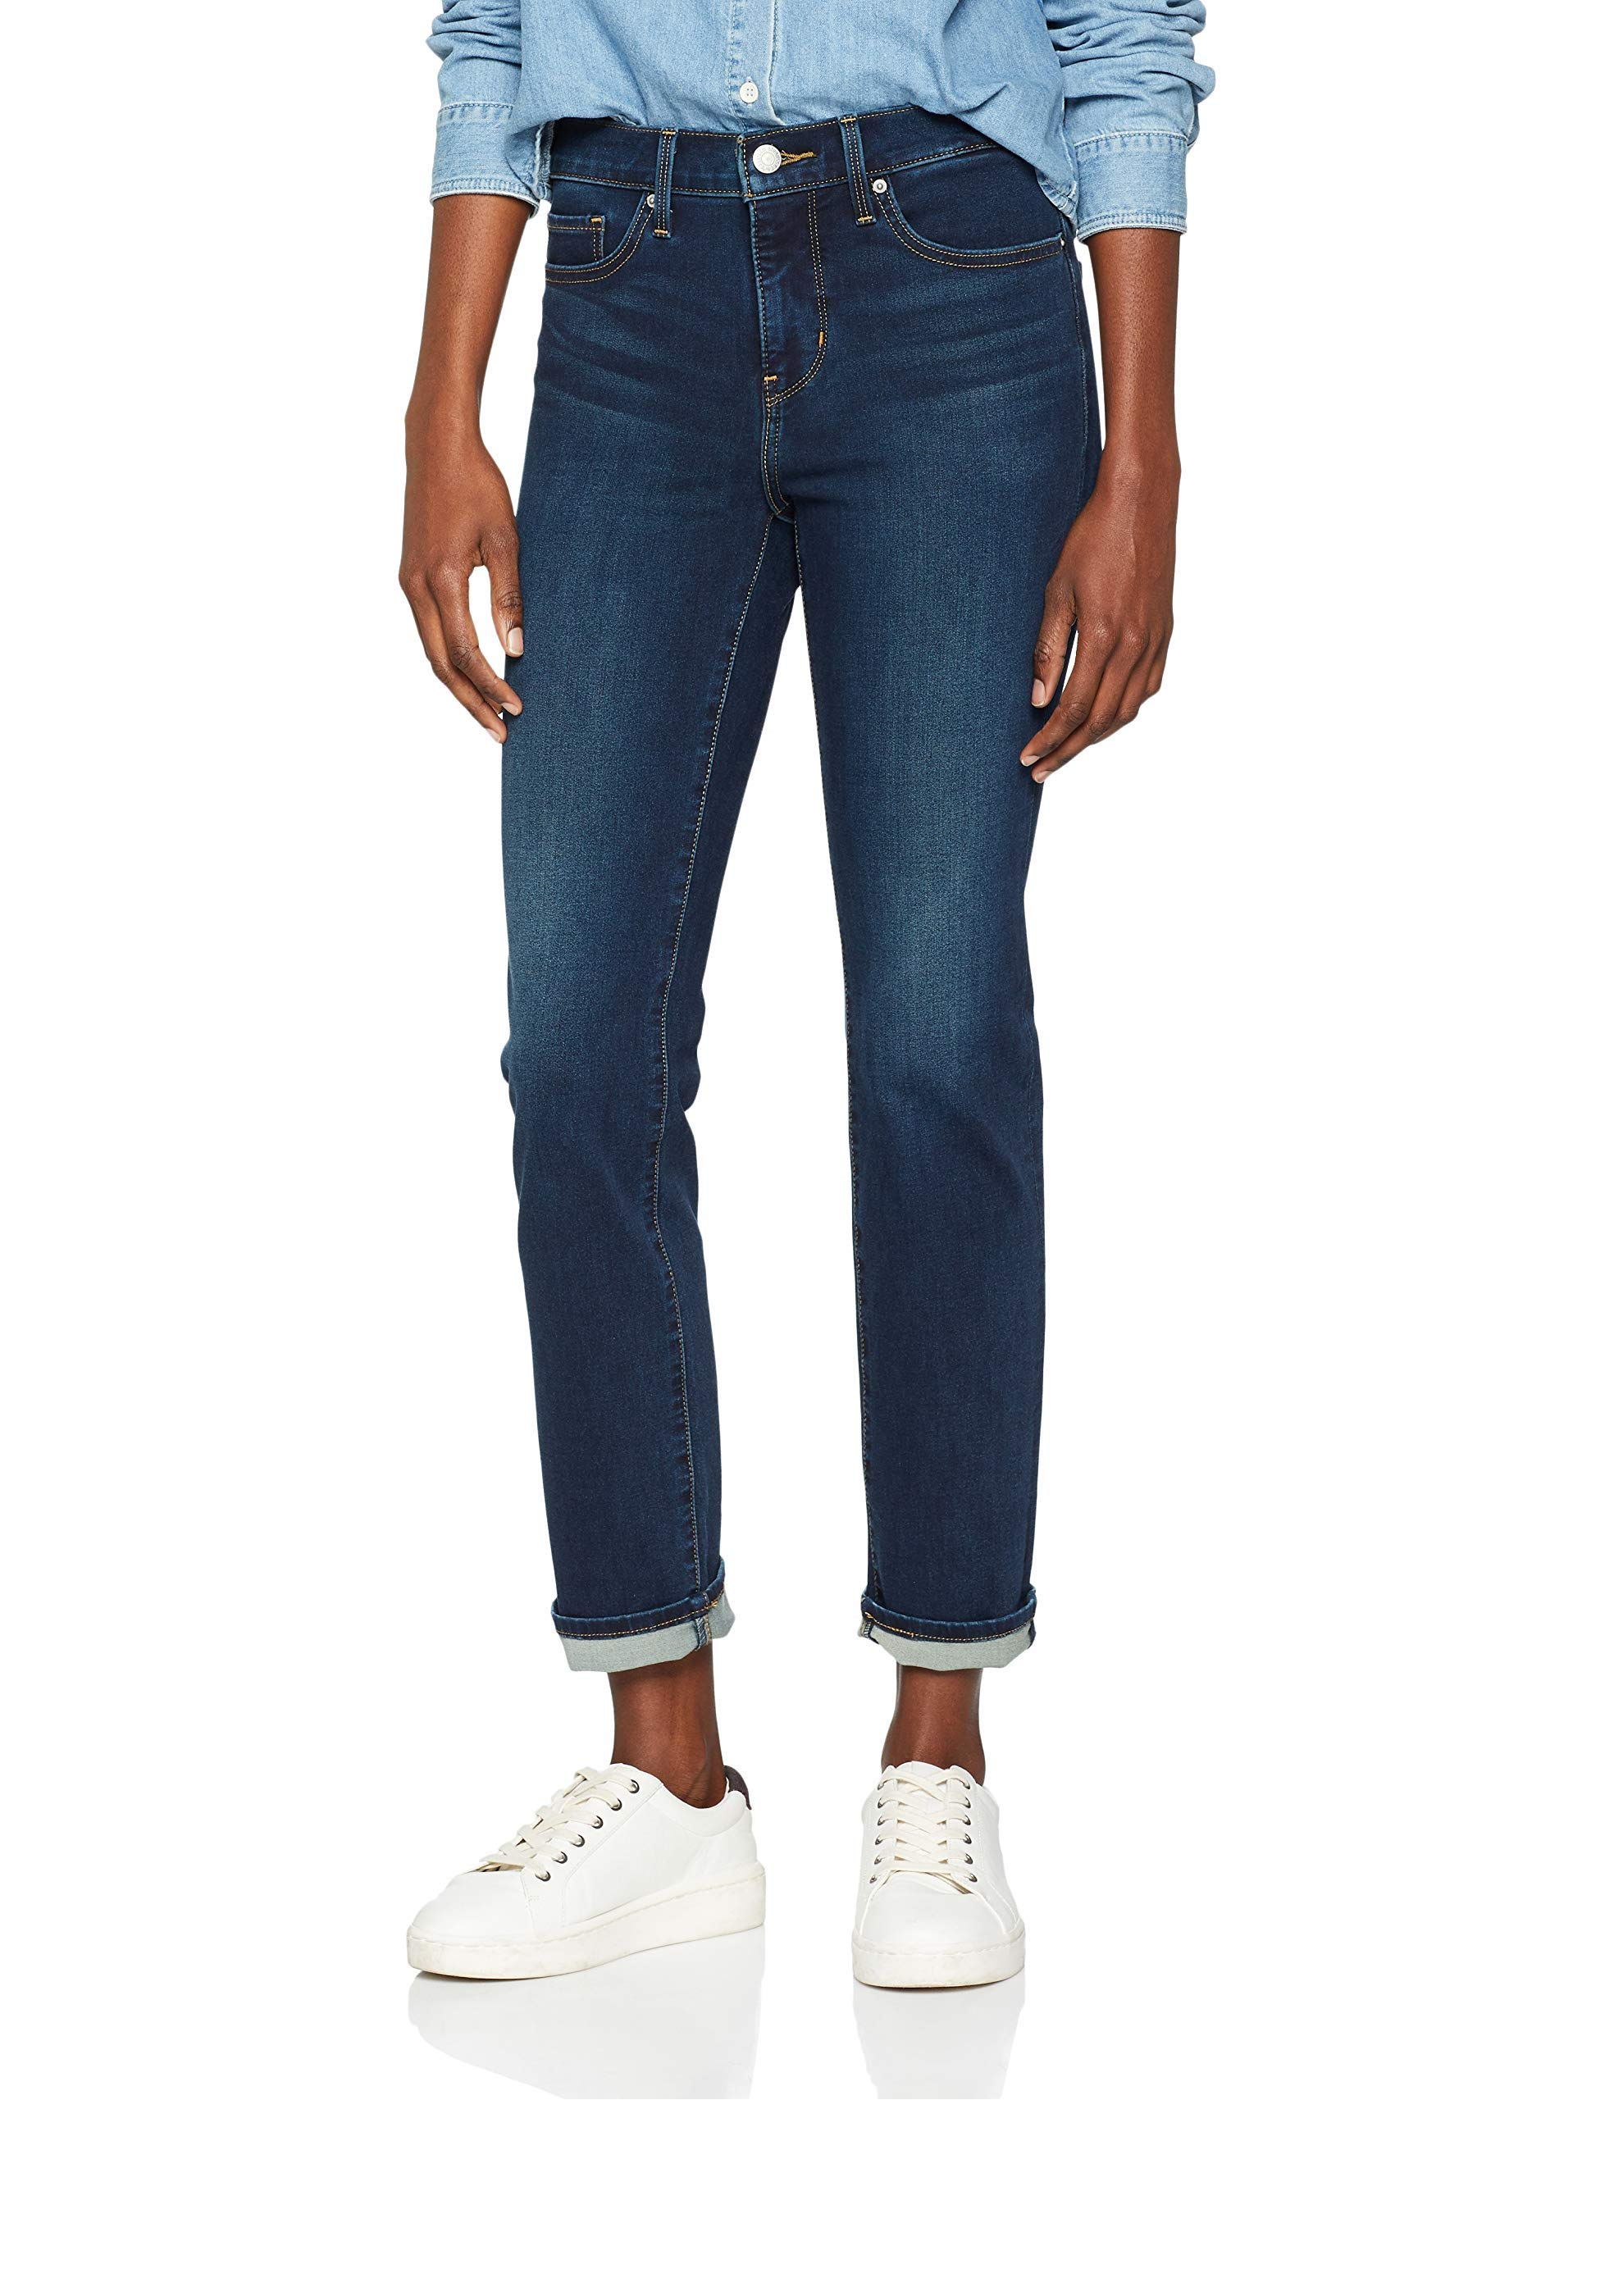 cafcf545 Women's Jeans: Amazon.co.uk